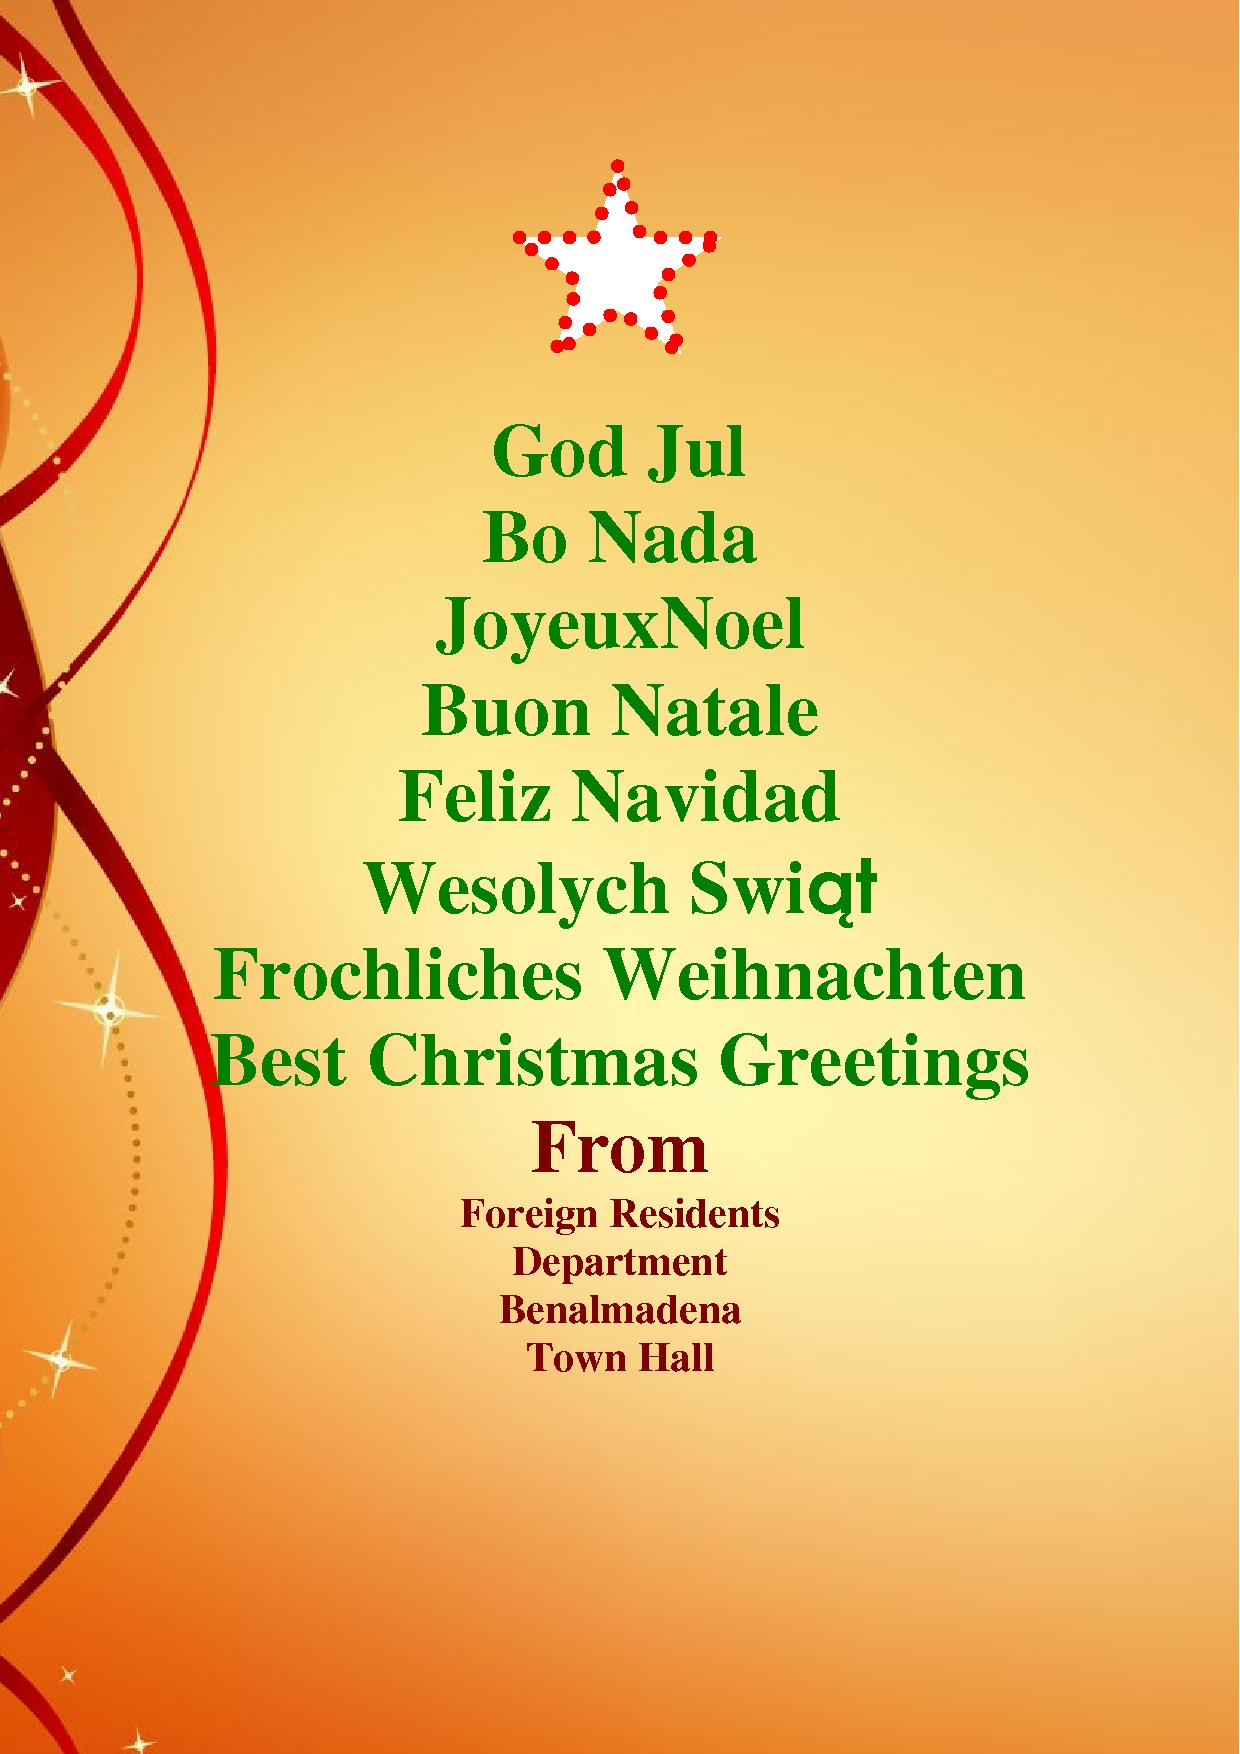 Best Christmas Greetings